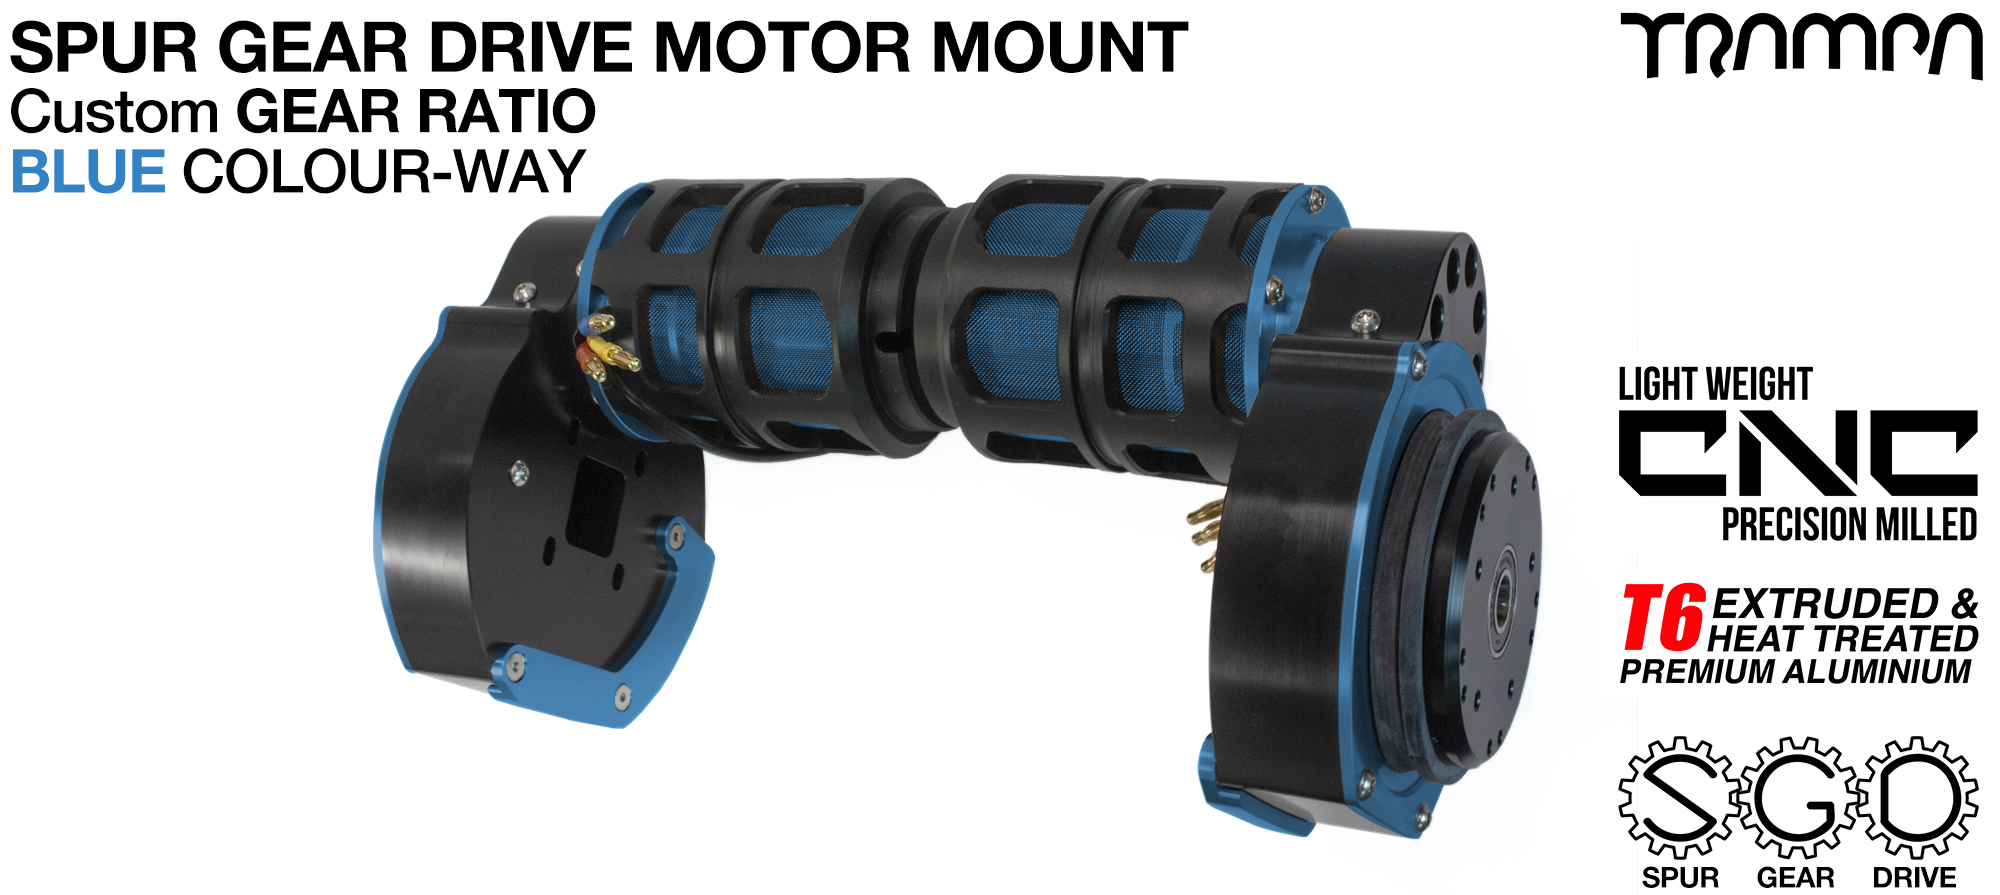 Mountainboard Spur Gear Drive TWIN Motor Mount - BLUE